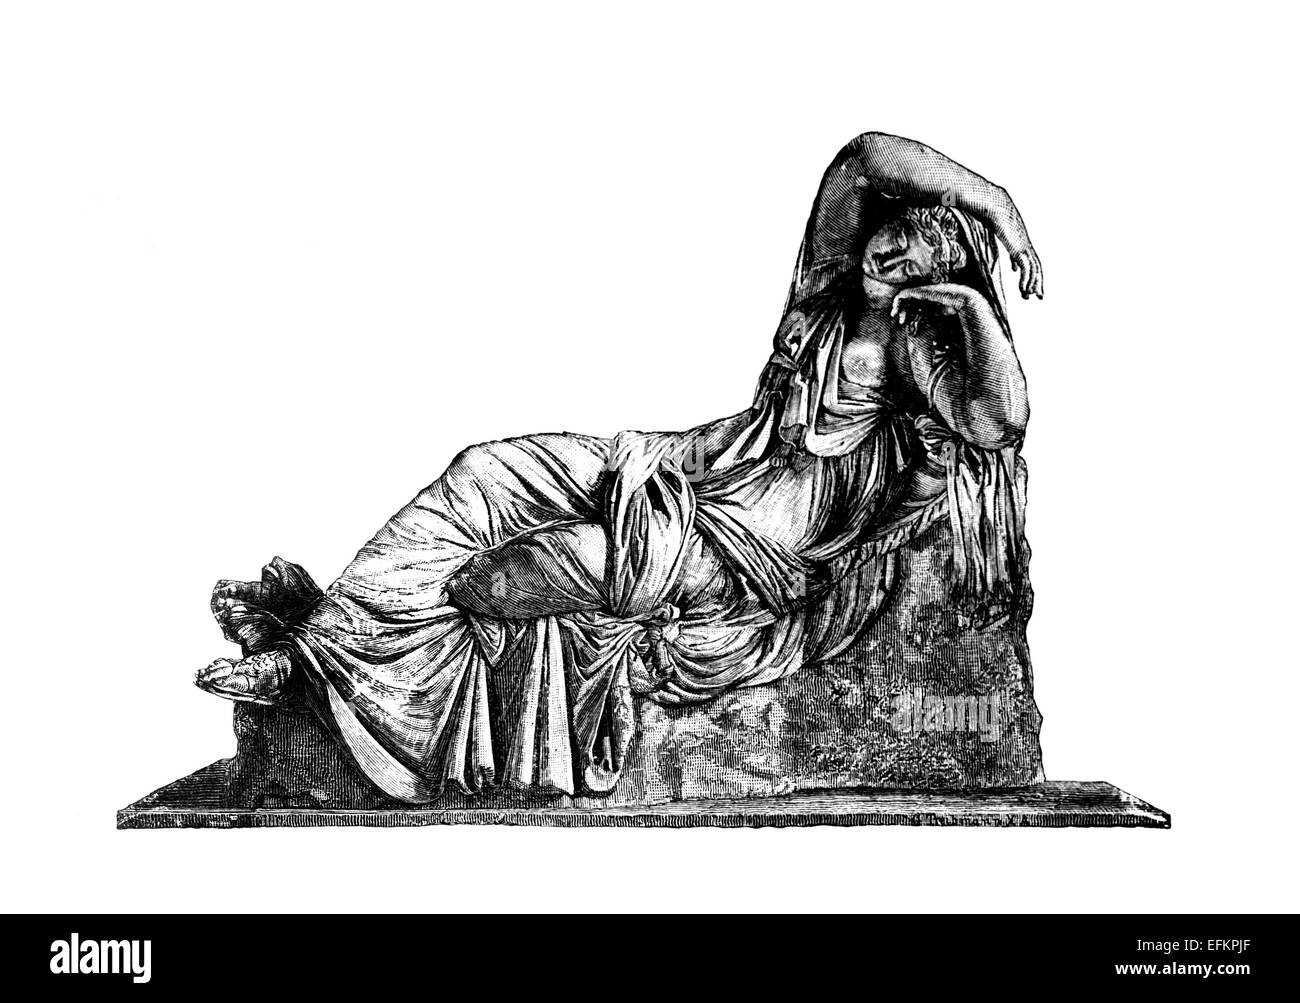 Victorian engraving of the sculpture Sleeping Ariadne. Digitally restored image from a mid-19th century Encyclopaedia. Stock Photo